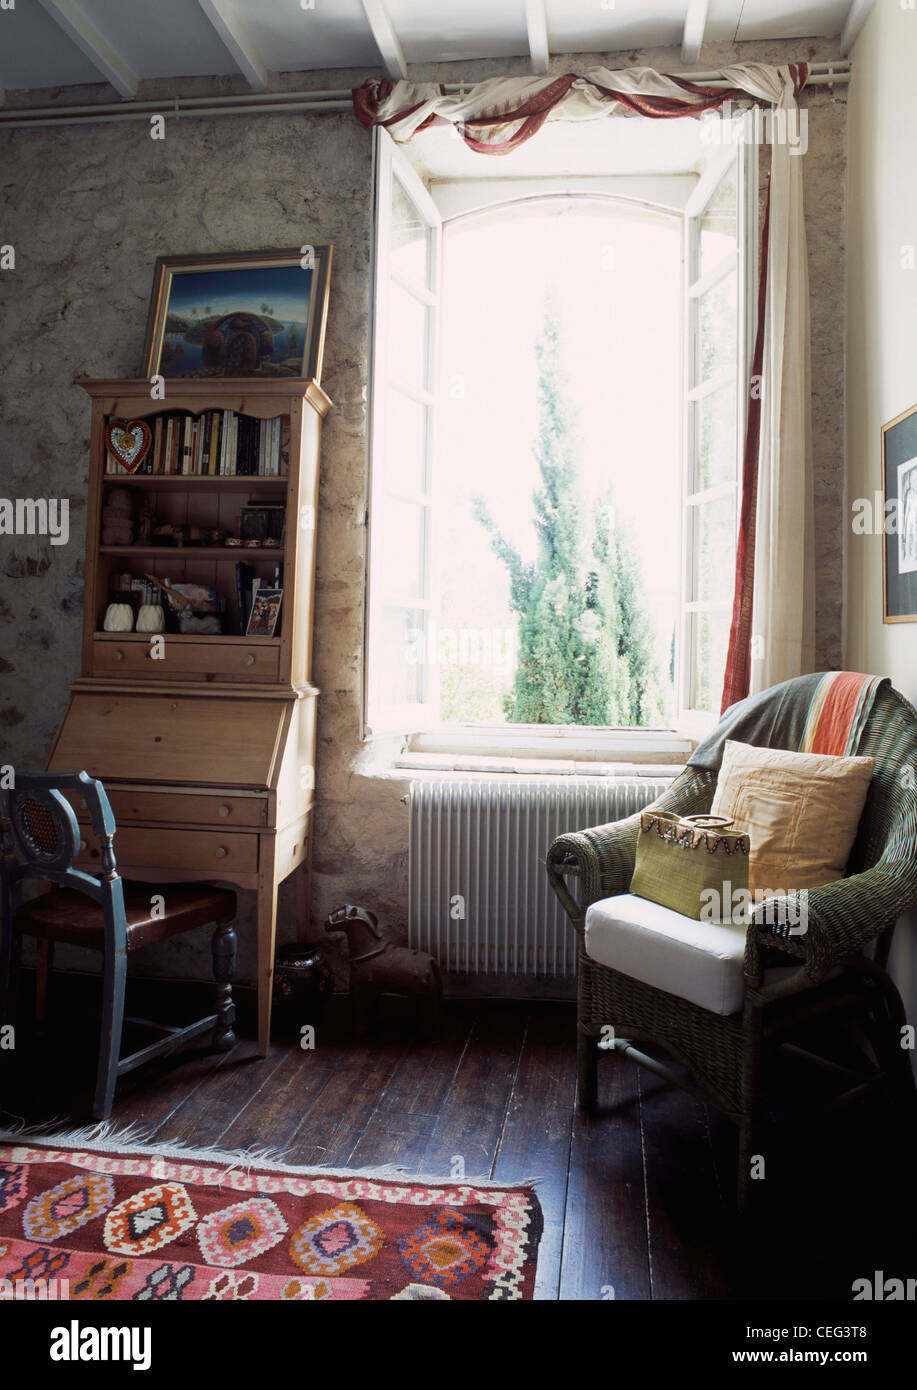 cushions on green wicker chair beside window in french country cushions on green wicker chair beside window in french country living room with antique pine desk and stone walls